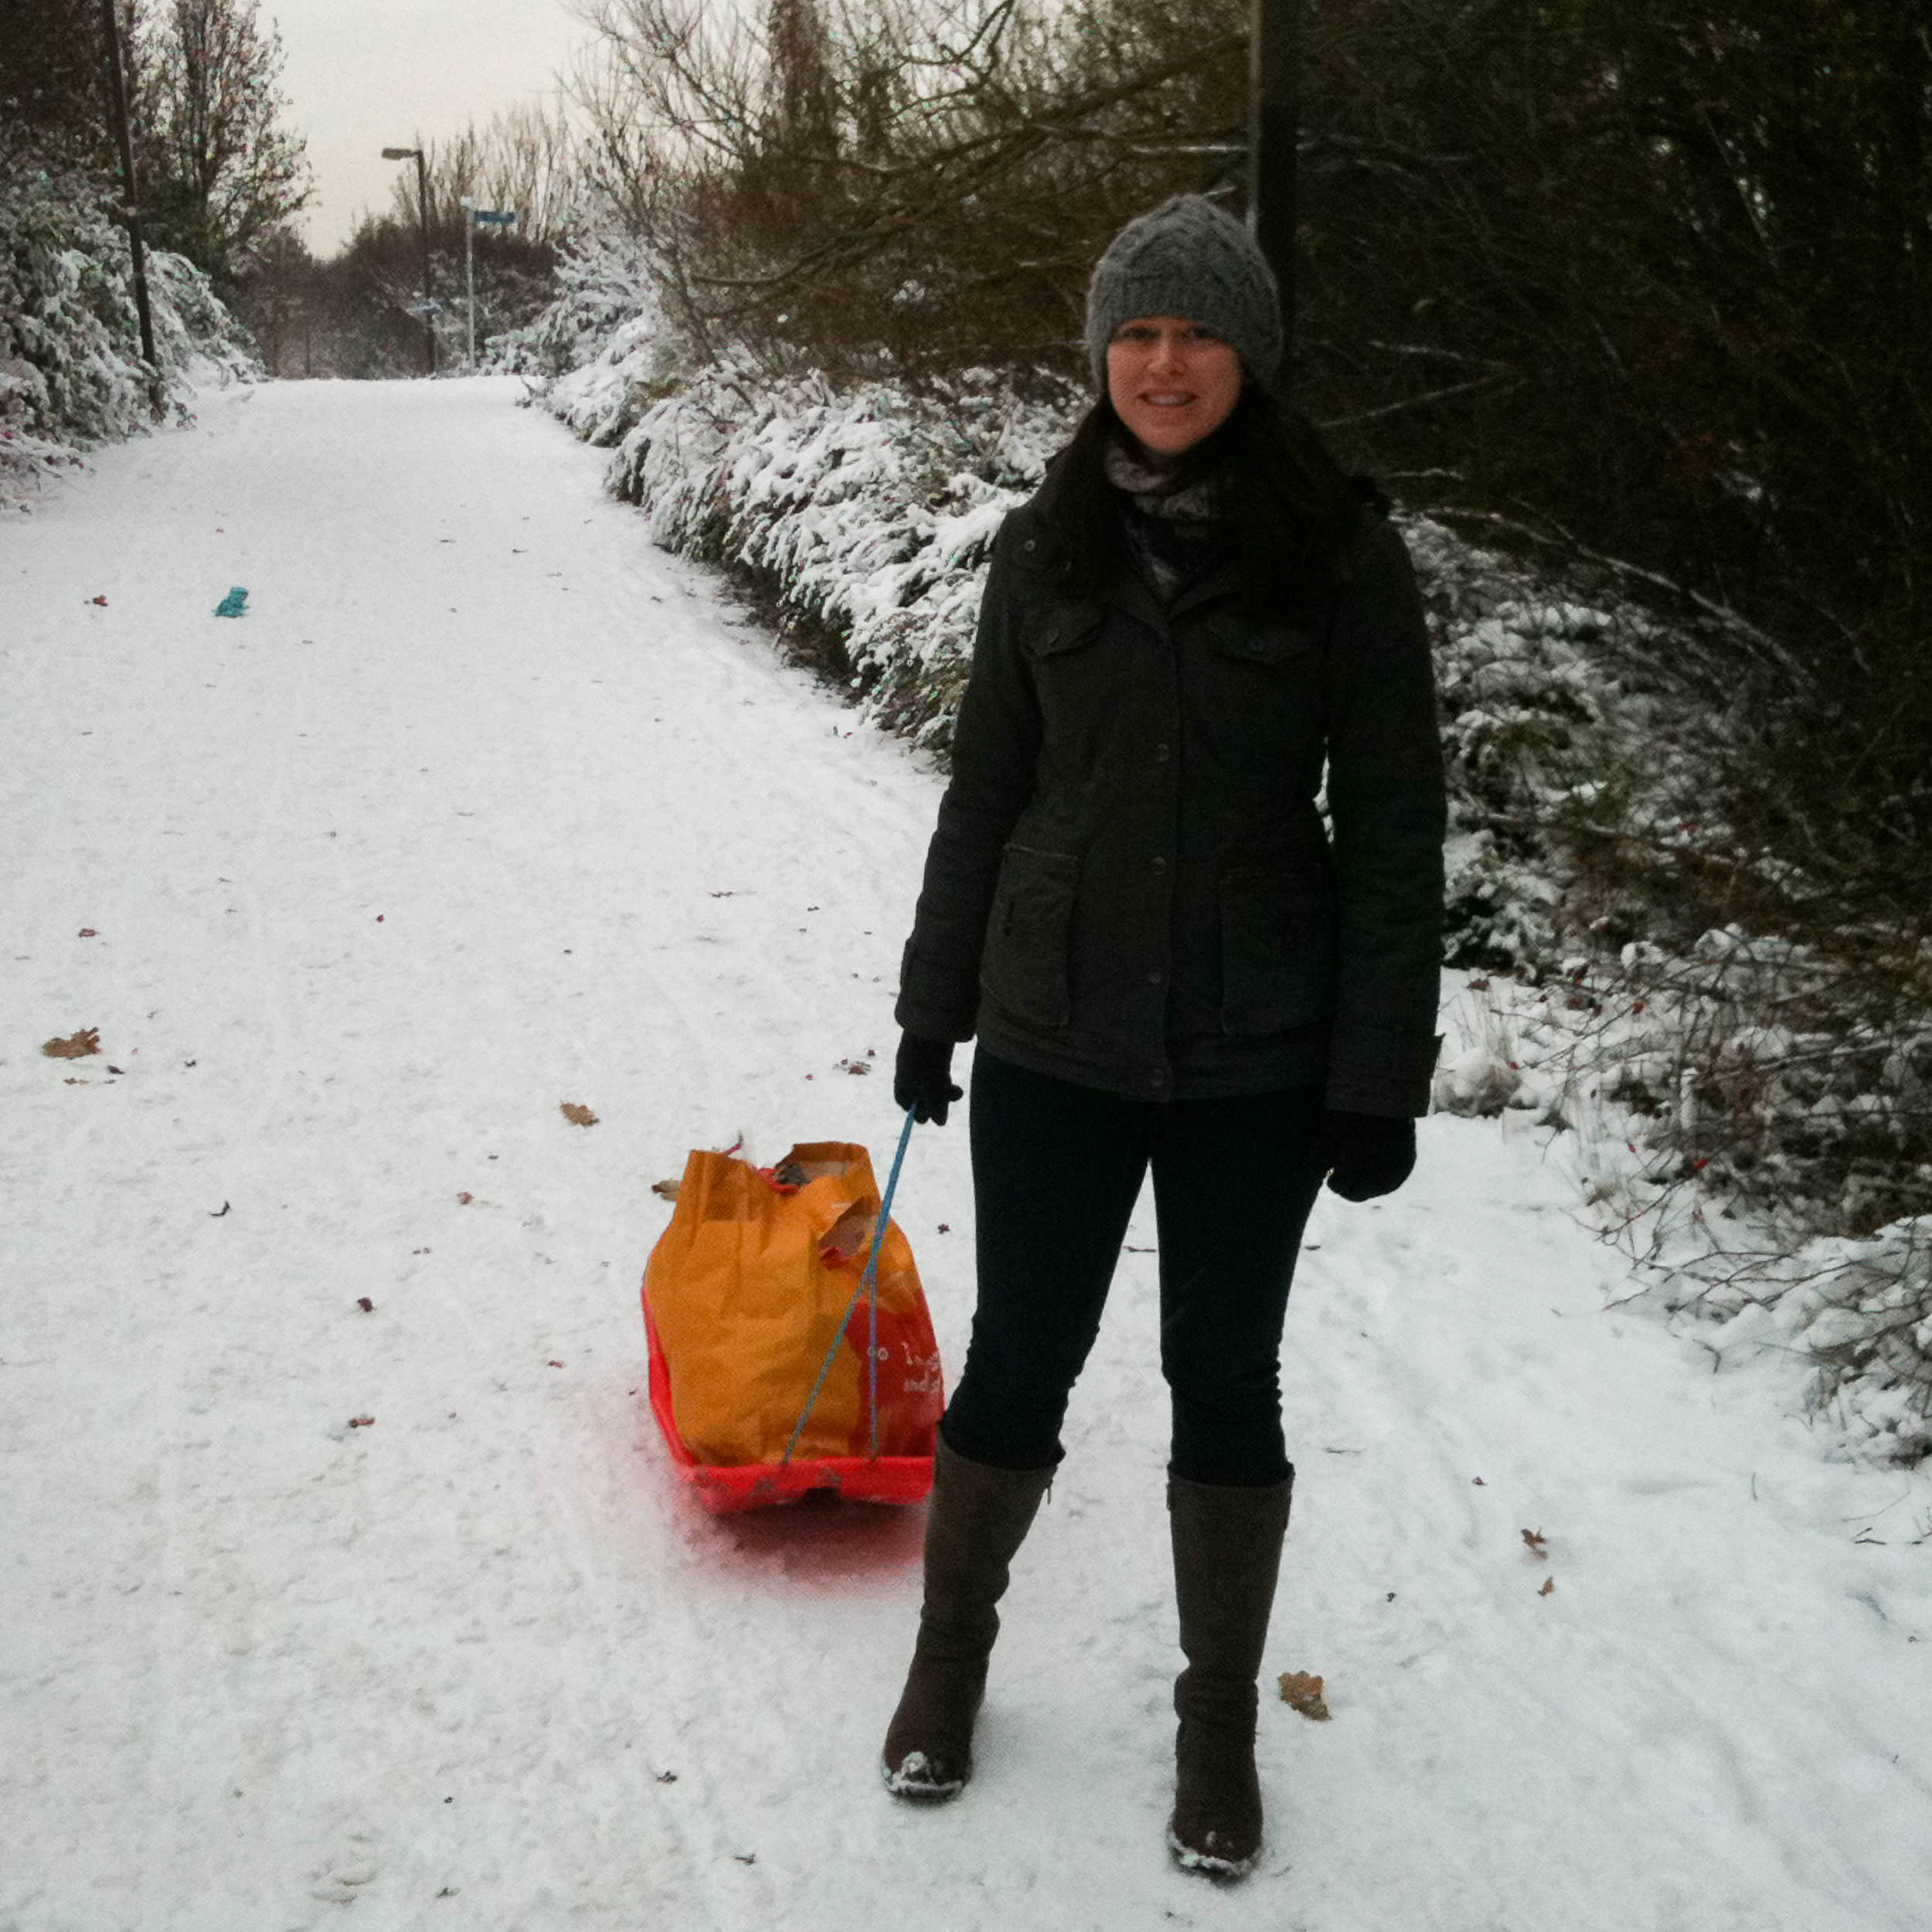 Woman pulling a sled that is carrying a bag of groceries down a snowy slope